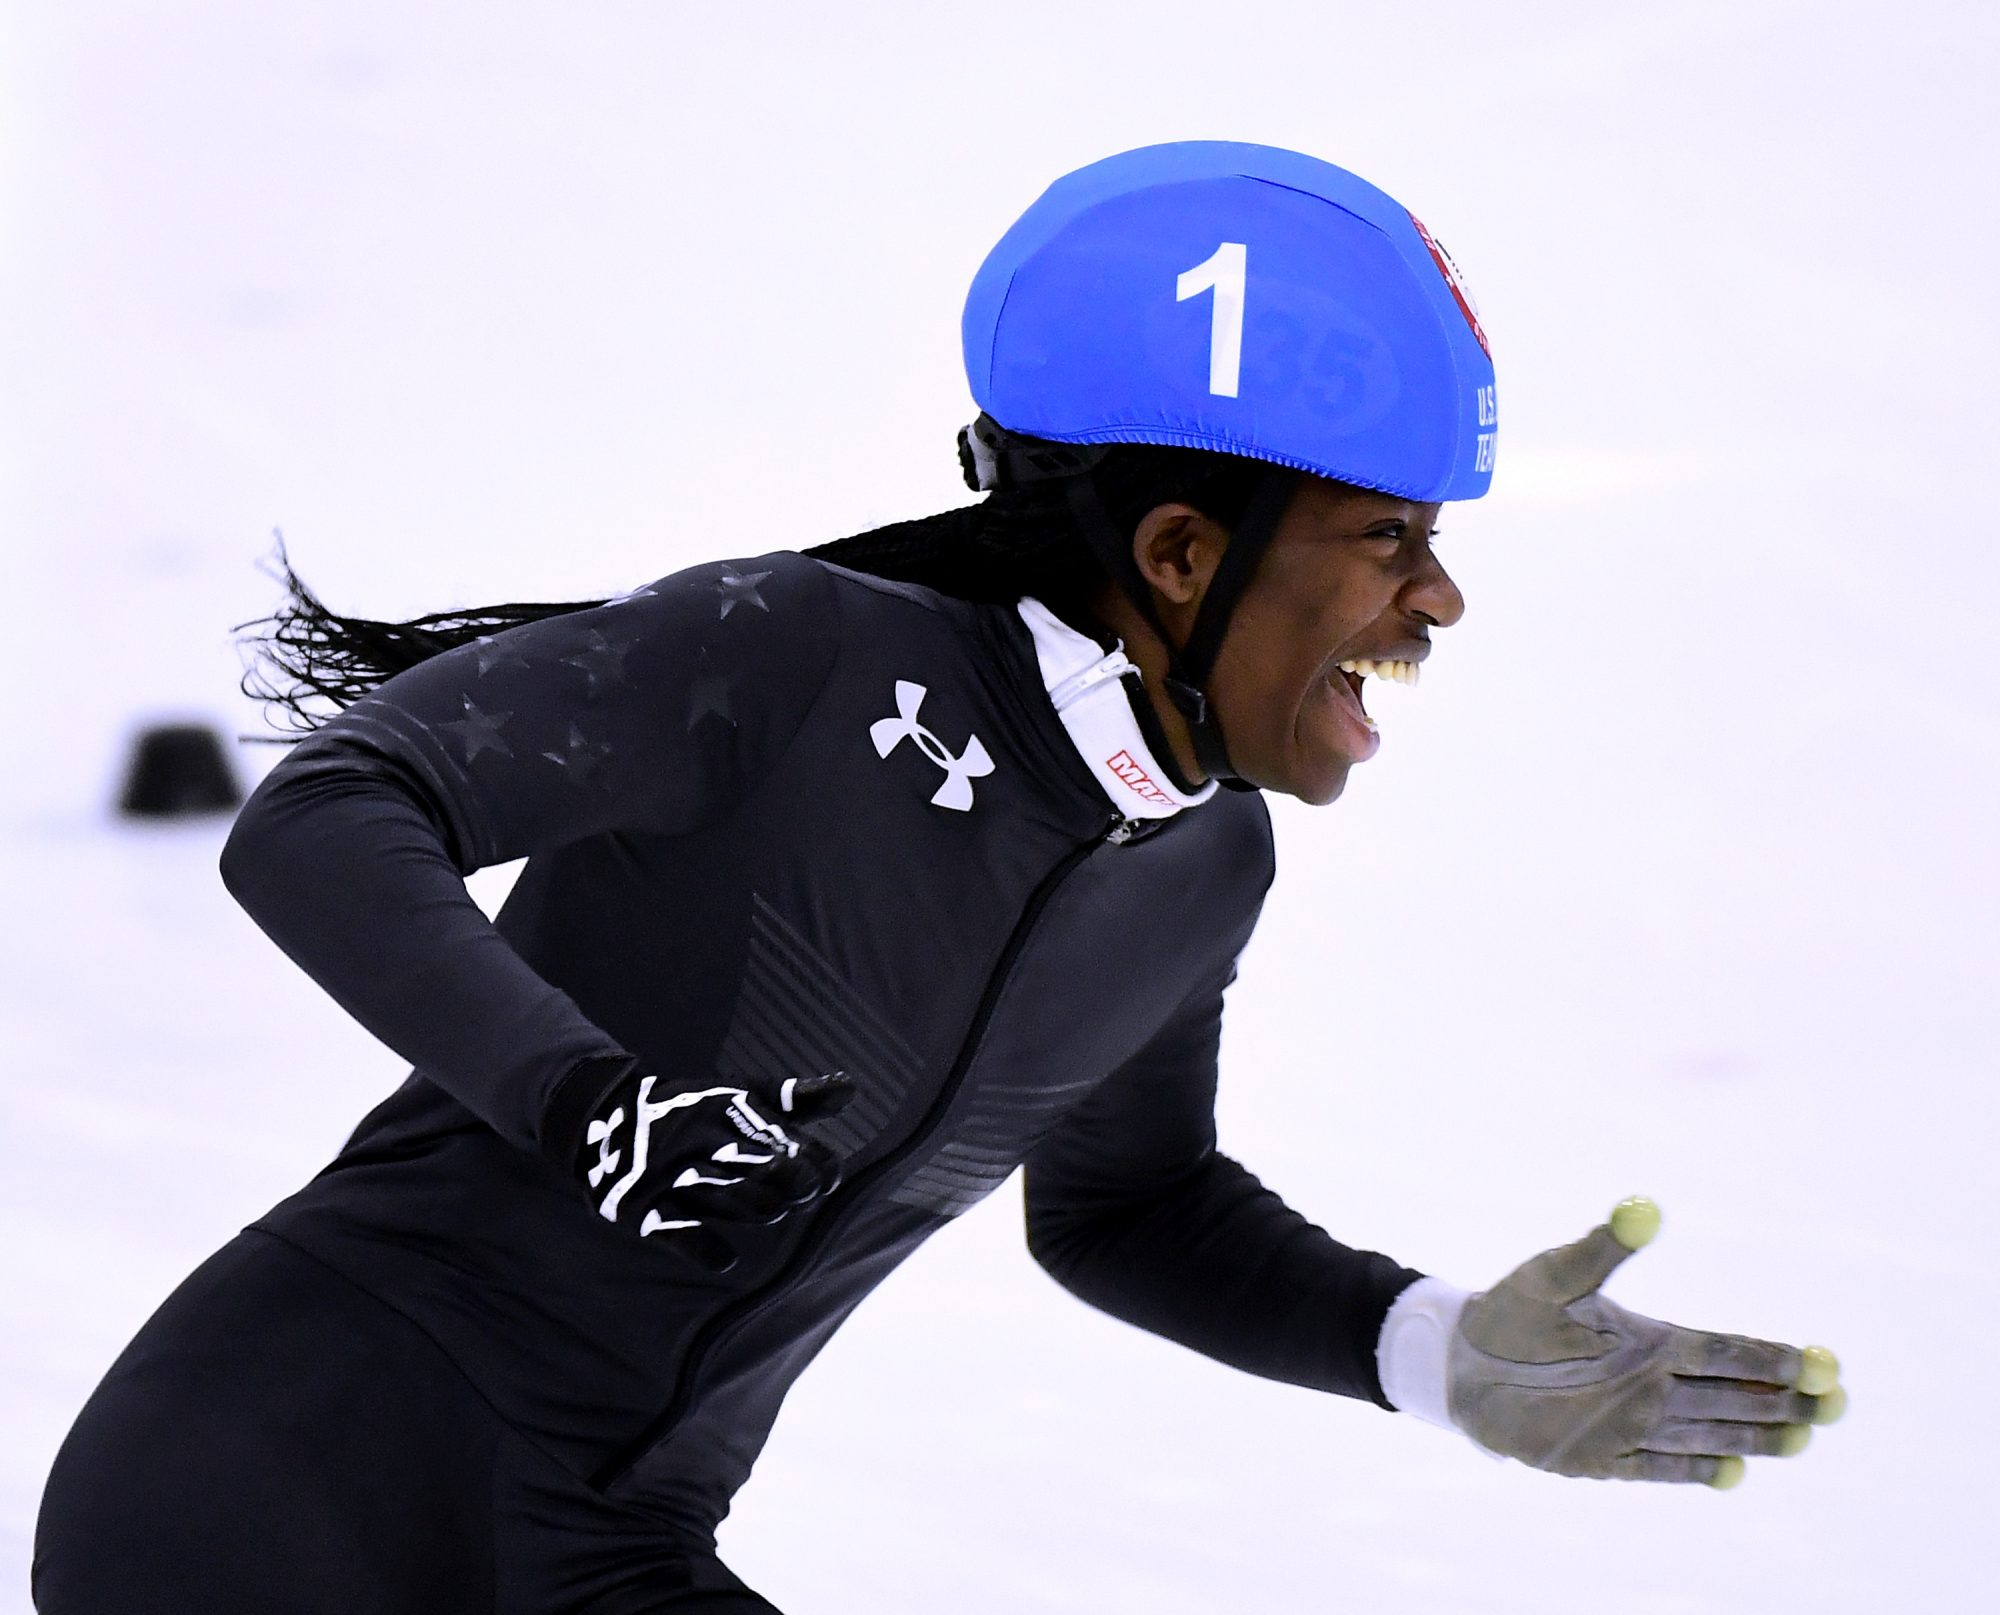 Photo of Maame Biney at the 2018 U.S. Speedskating Short Track Olympic Team Trials